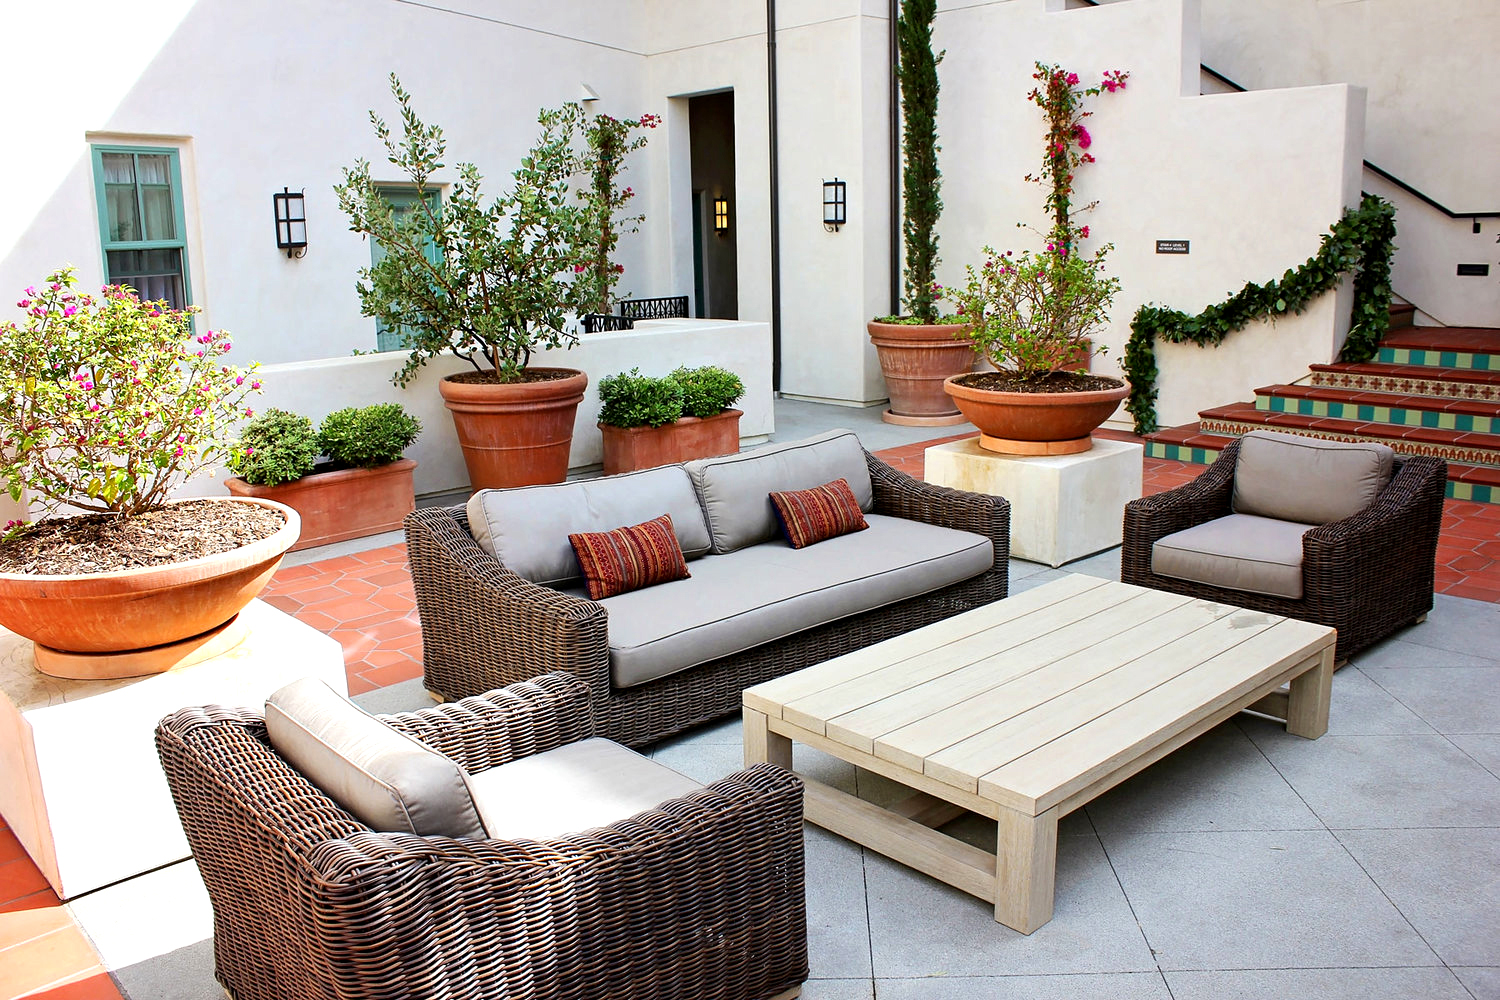 2-spanish-communal-courtyard-patio-furniture-rollins-andrew.jpg